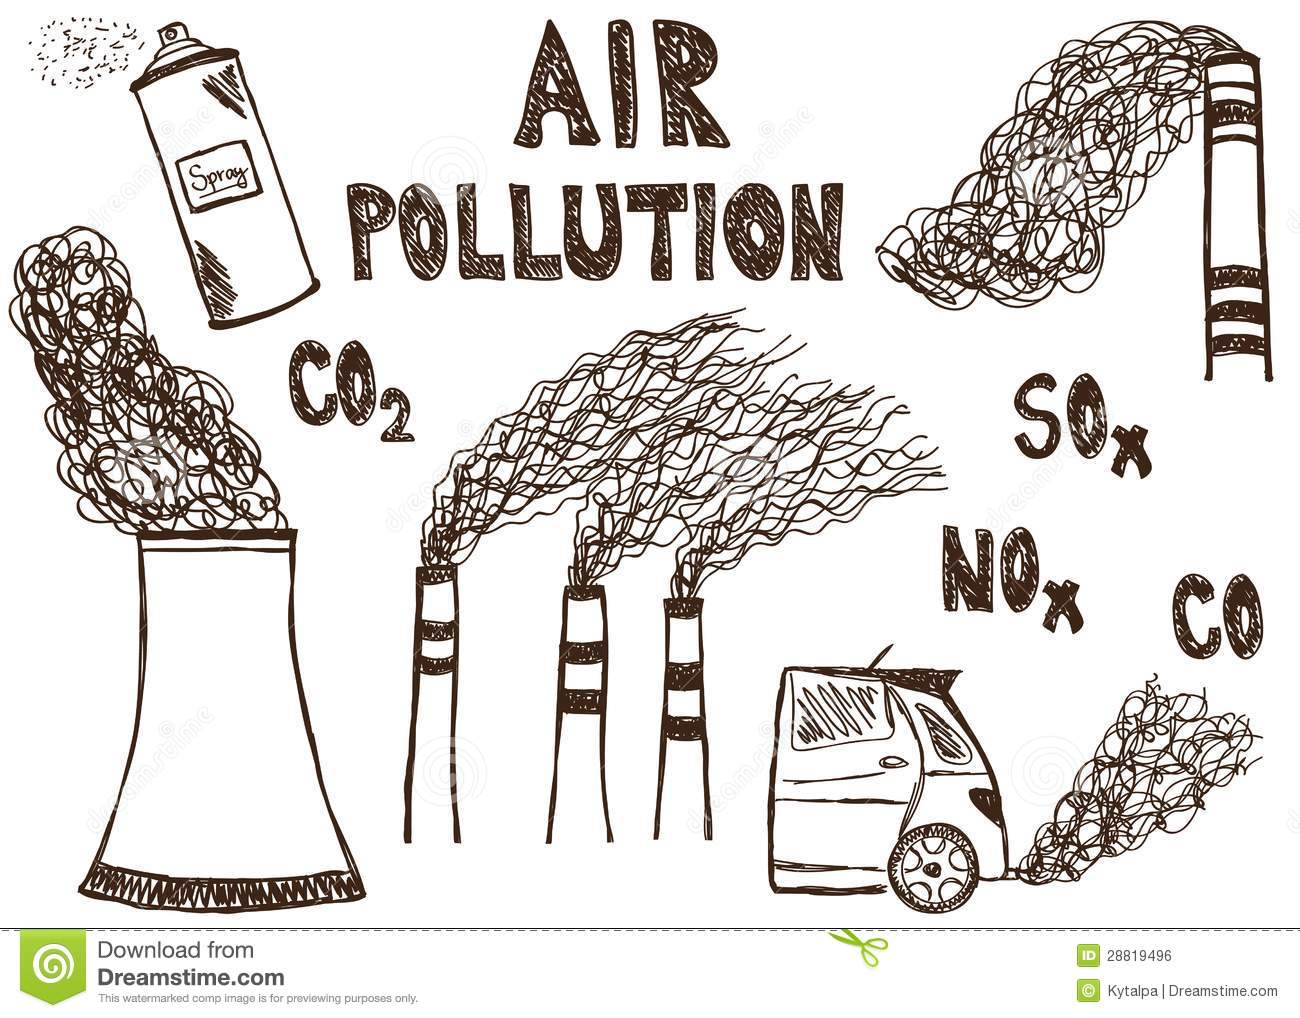 Air Pollution Doodle Royalty Free Stock Image - Image: 28819496